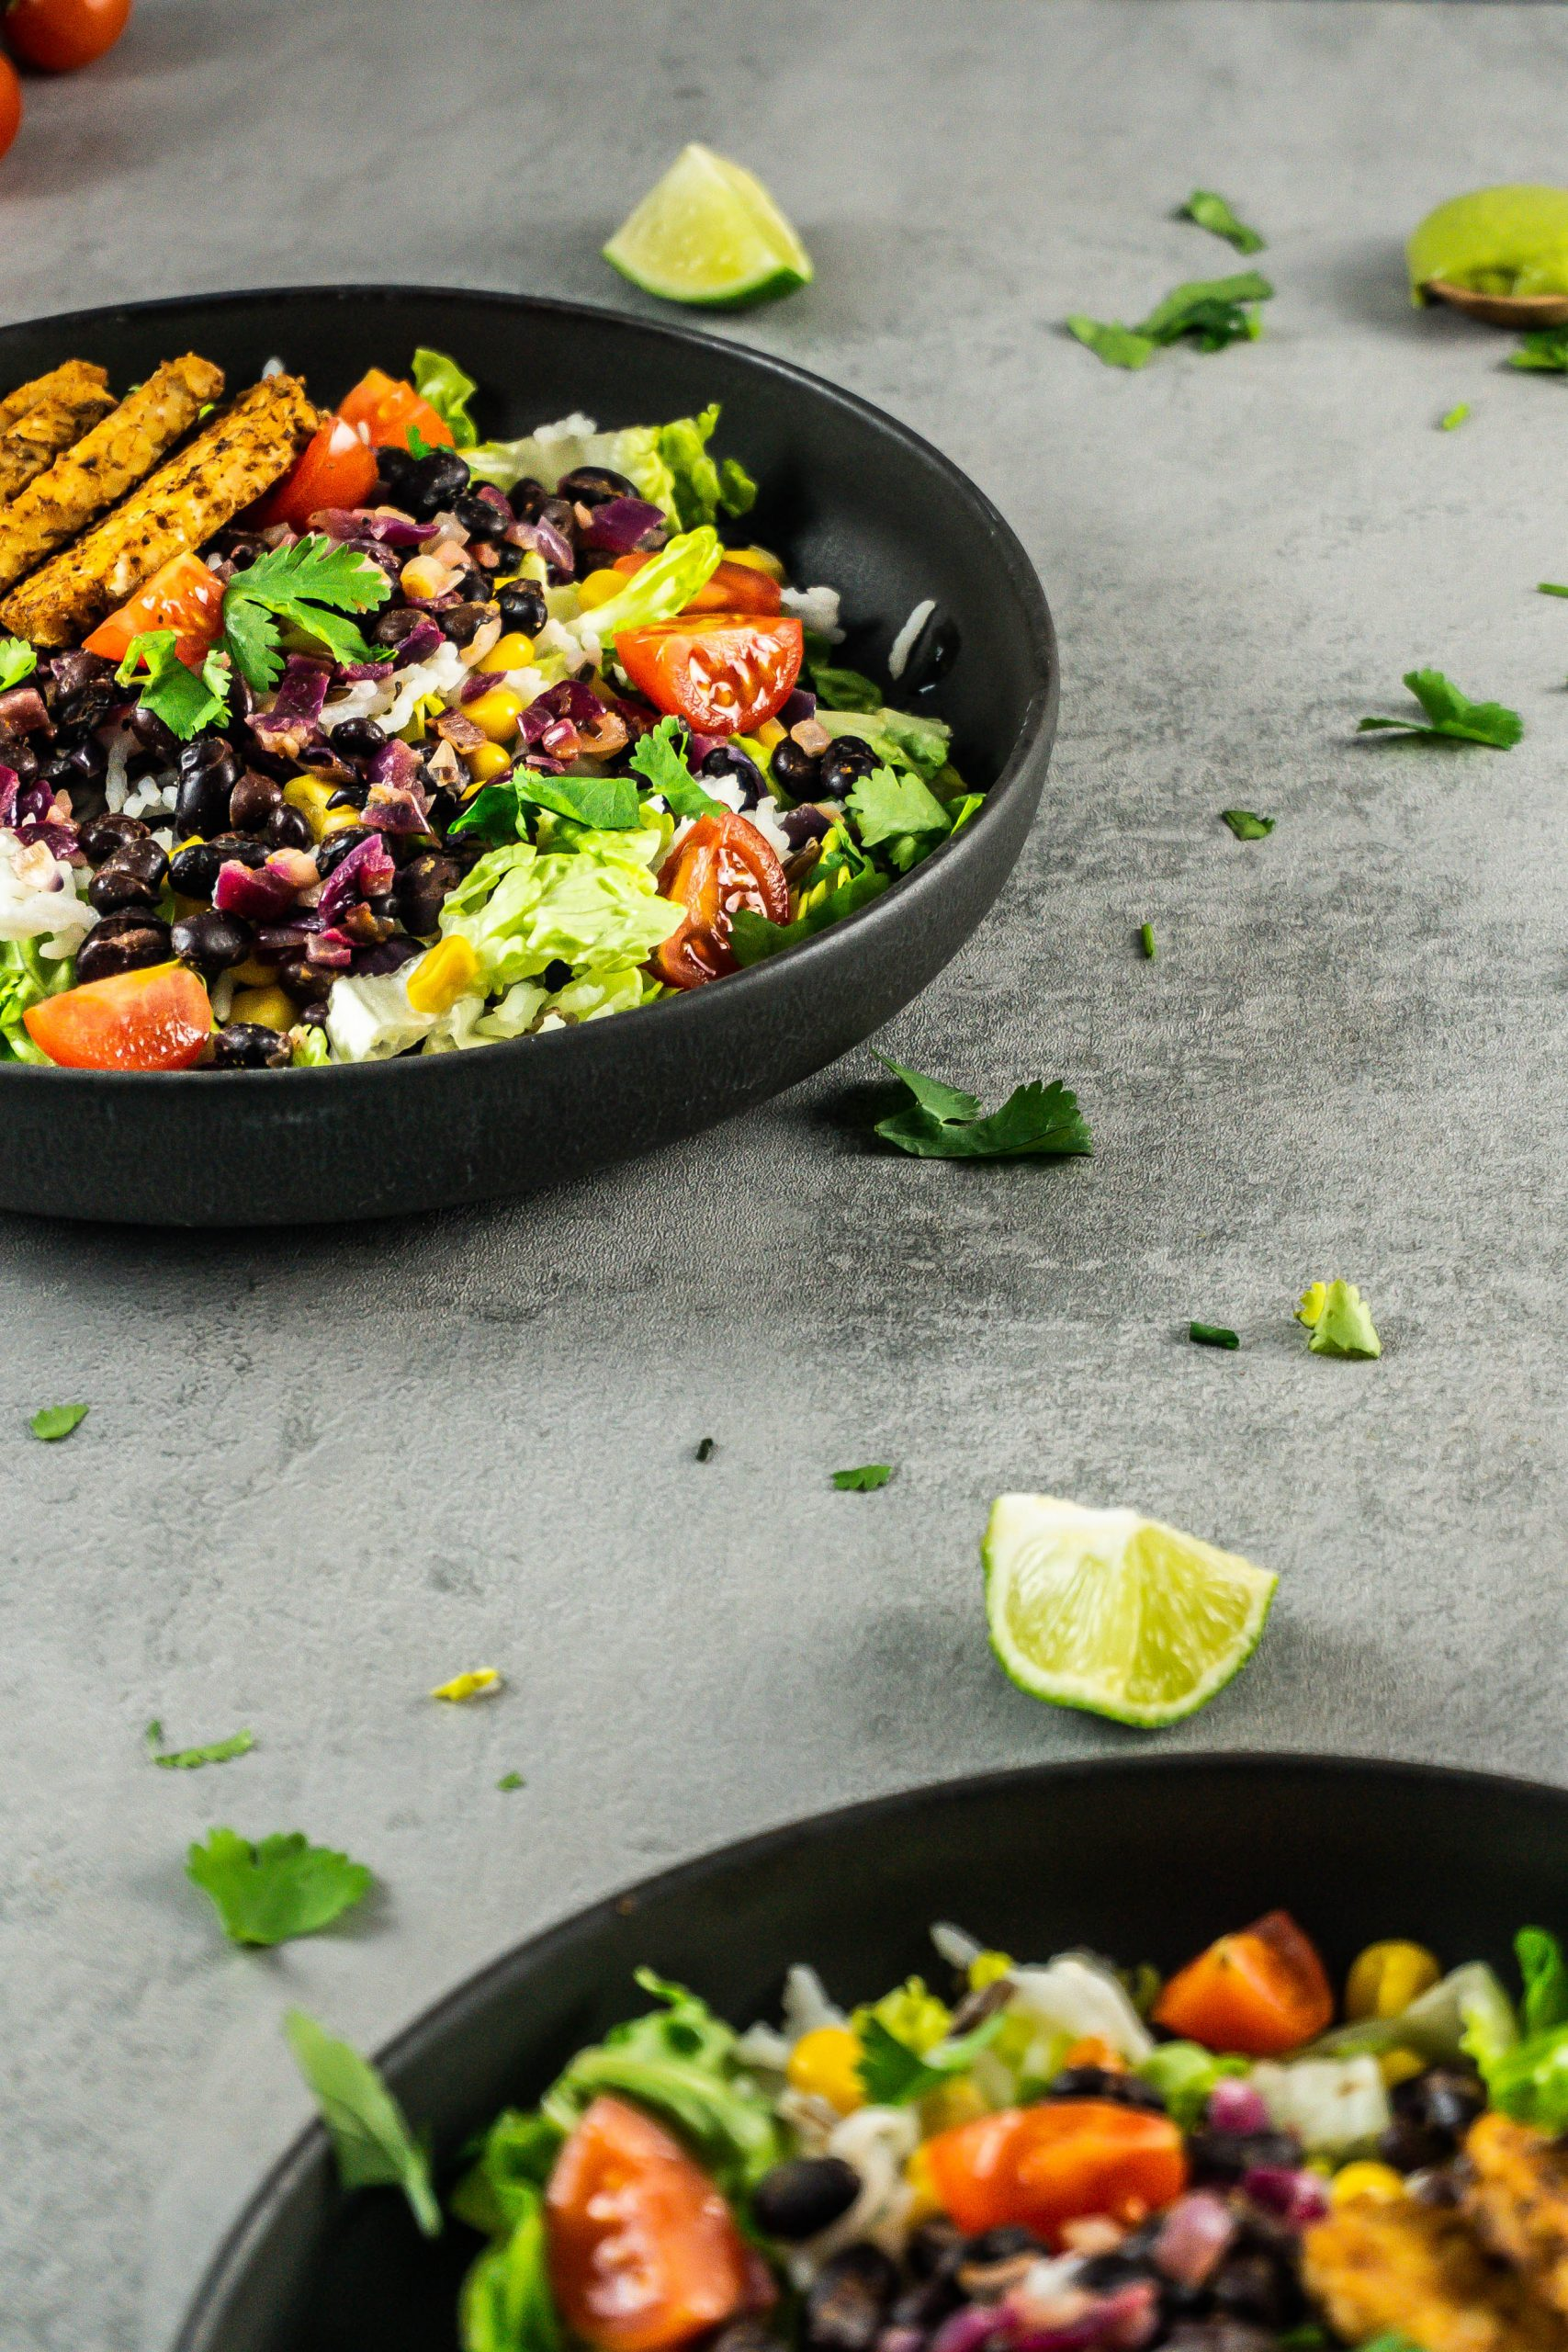 Two Vegan Burrito Bowls on a grey background with scattered lime pieces and cilantro around with the vegan burrito bowl being further away appearing in focus